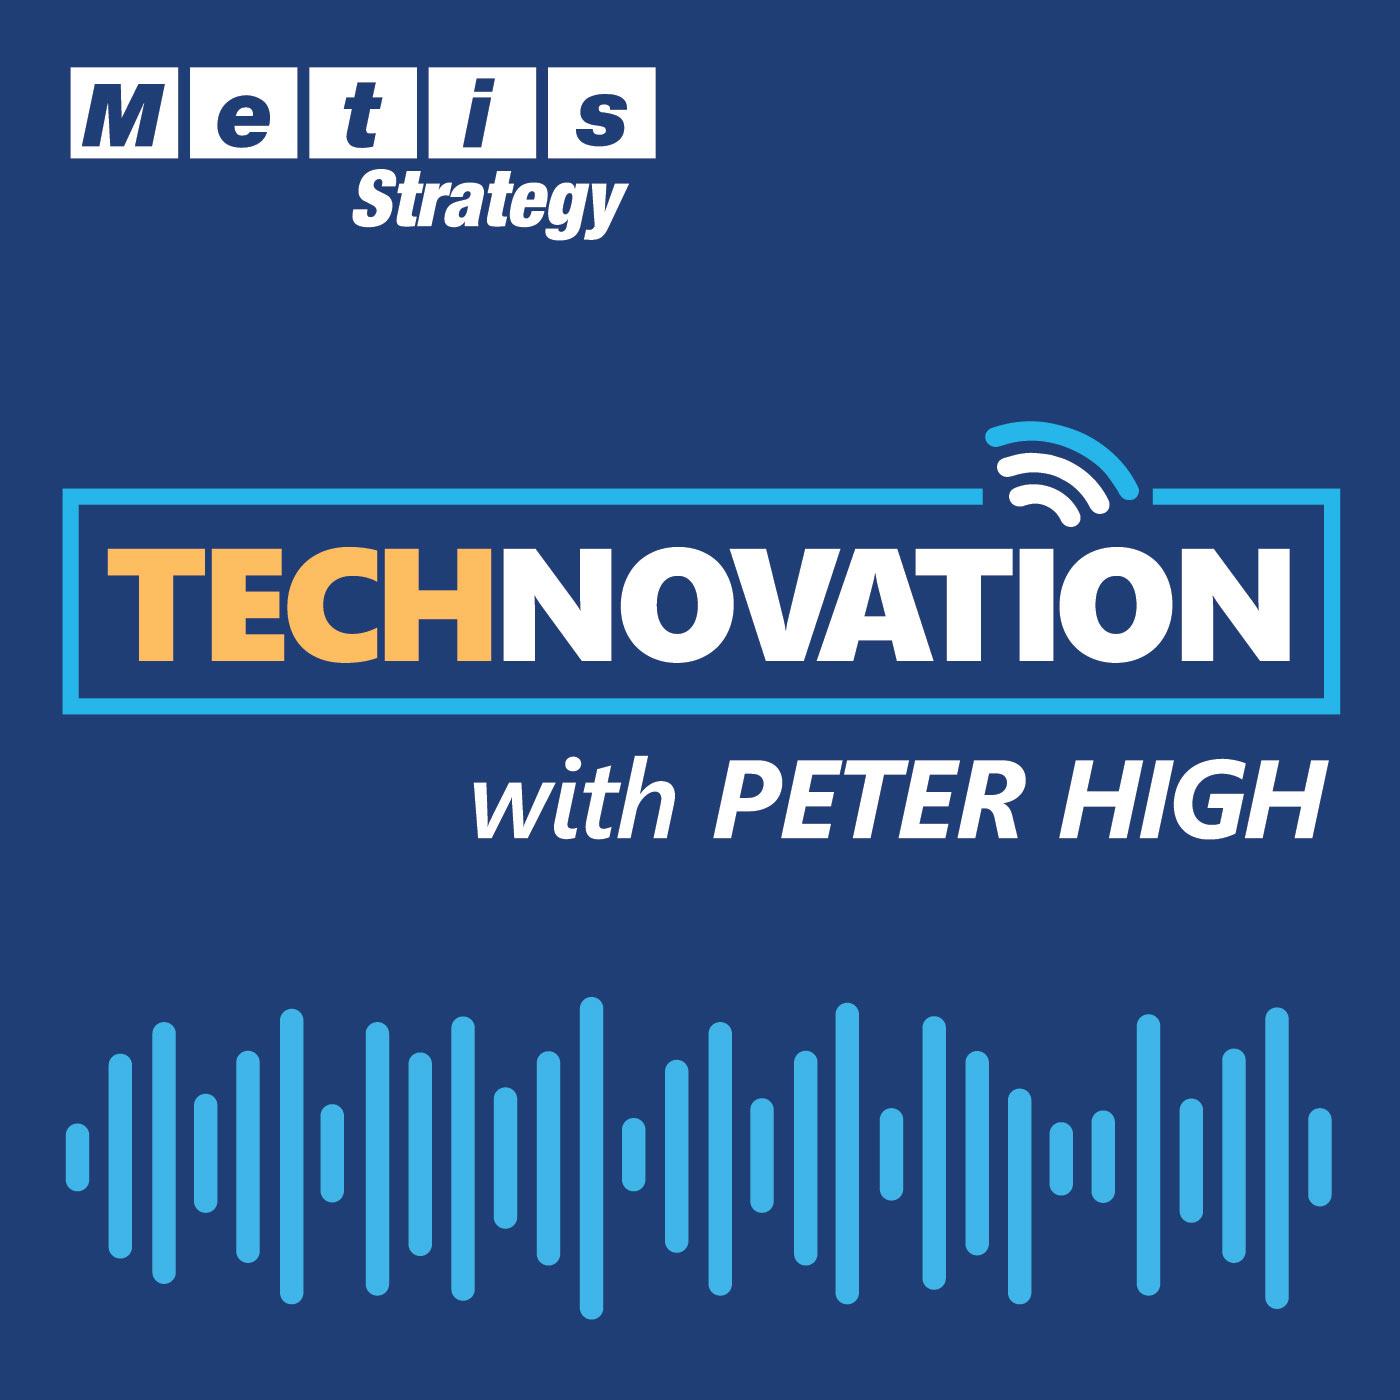 Technovation with Peter High (CIO, CTO, CDO, CXO Interviews)